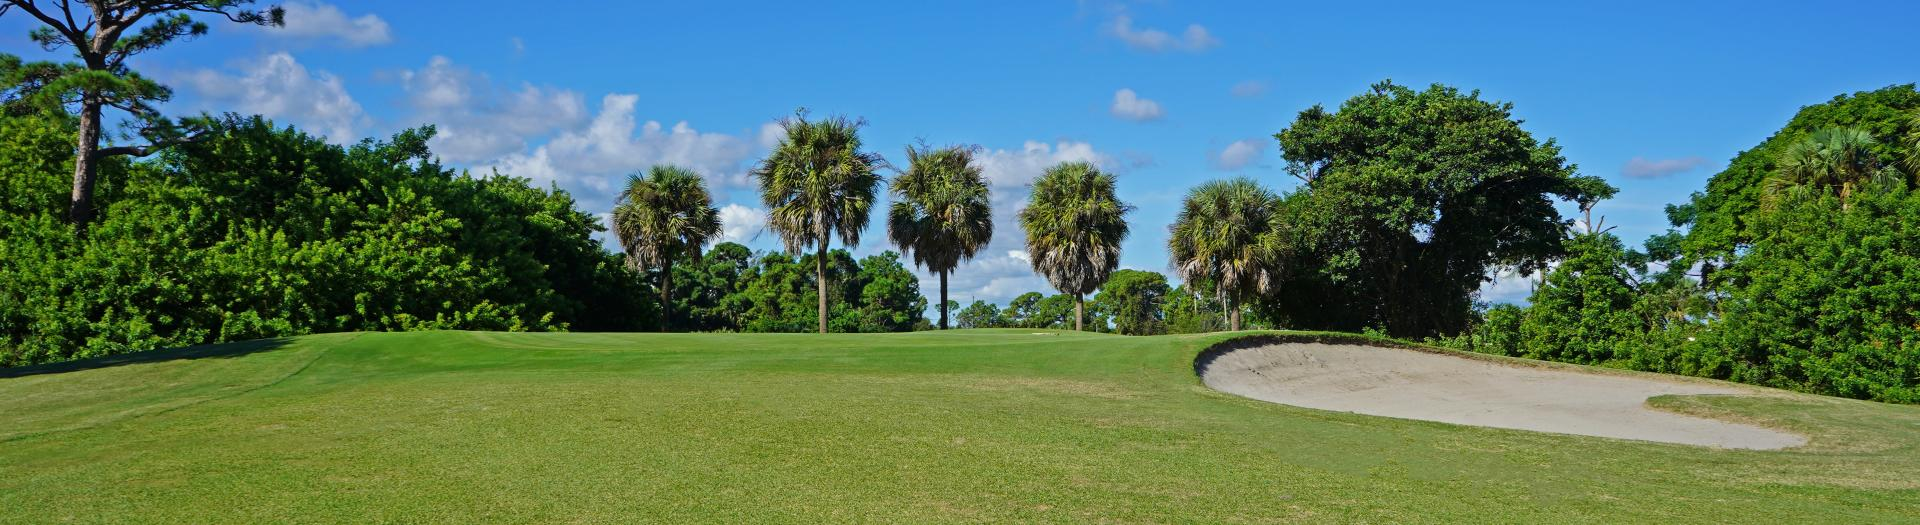 Golf course greens with palm trees